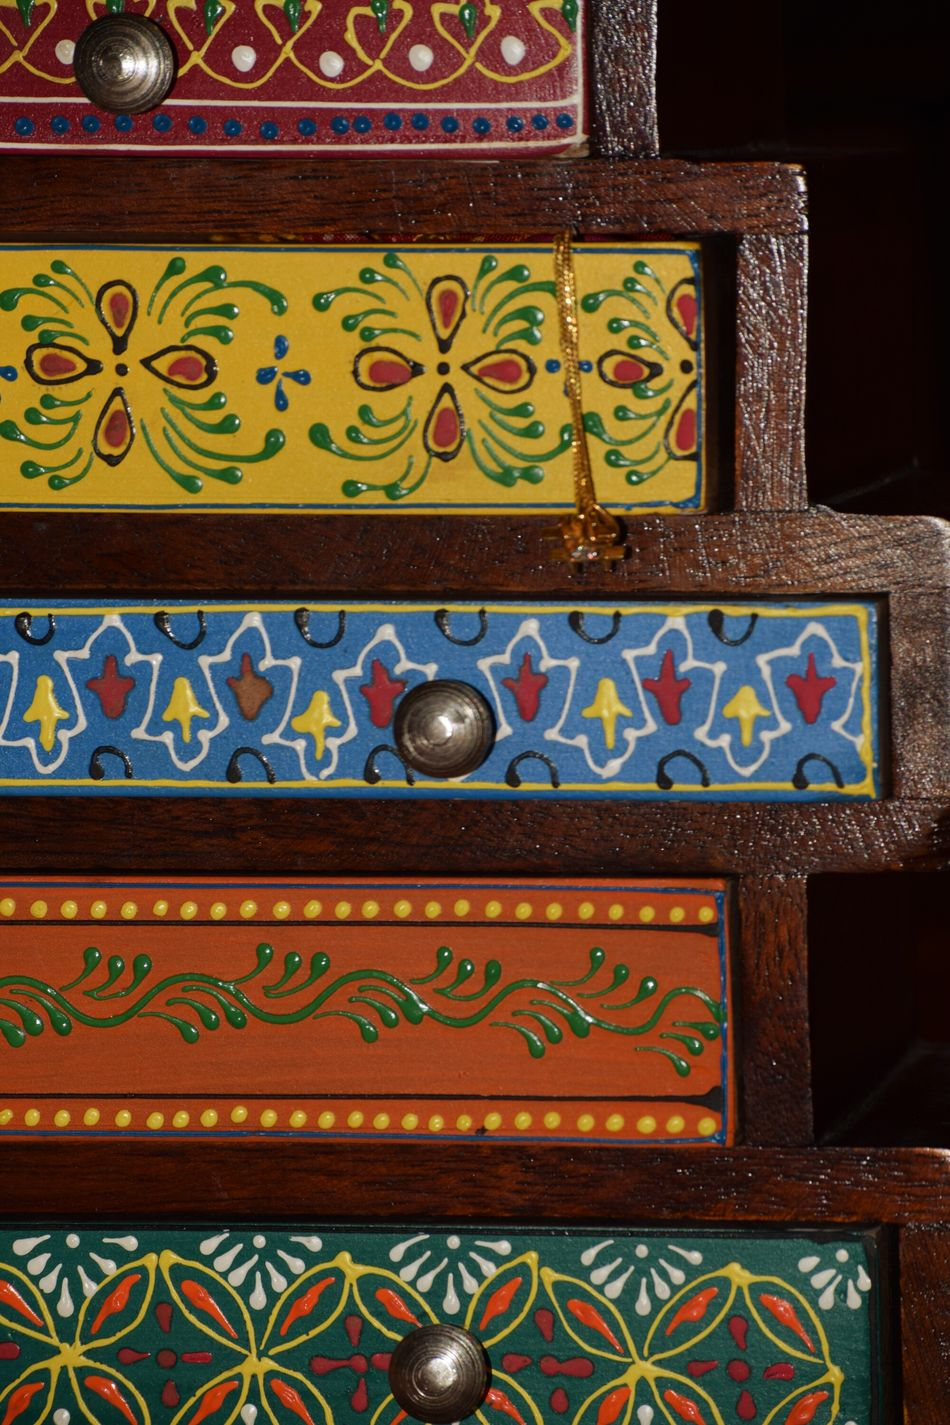 This is a small jewellery box which looks like Chestofdrawers Pattern Indoors  Decorative Art Handicraft No People Close-up Beutifully Organised Beautifully Organized Blackbackground Handmade For You Lieblingsteil